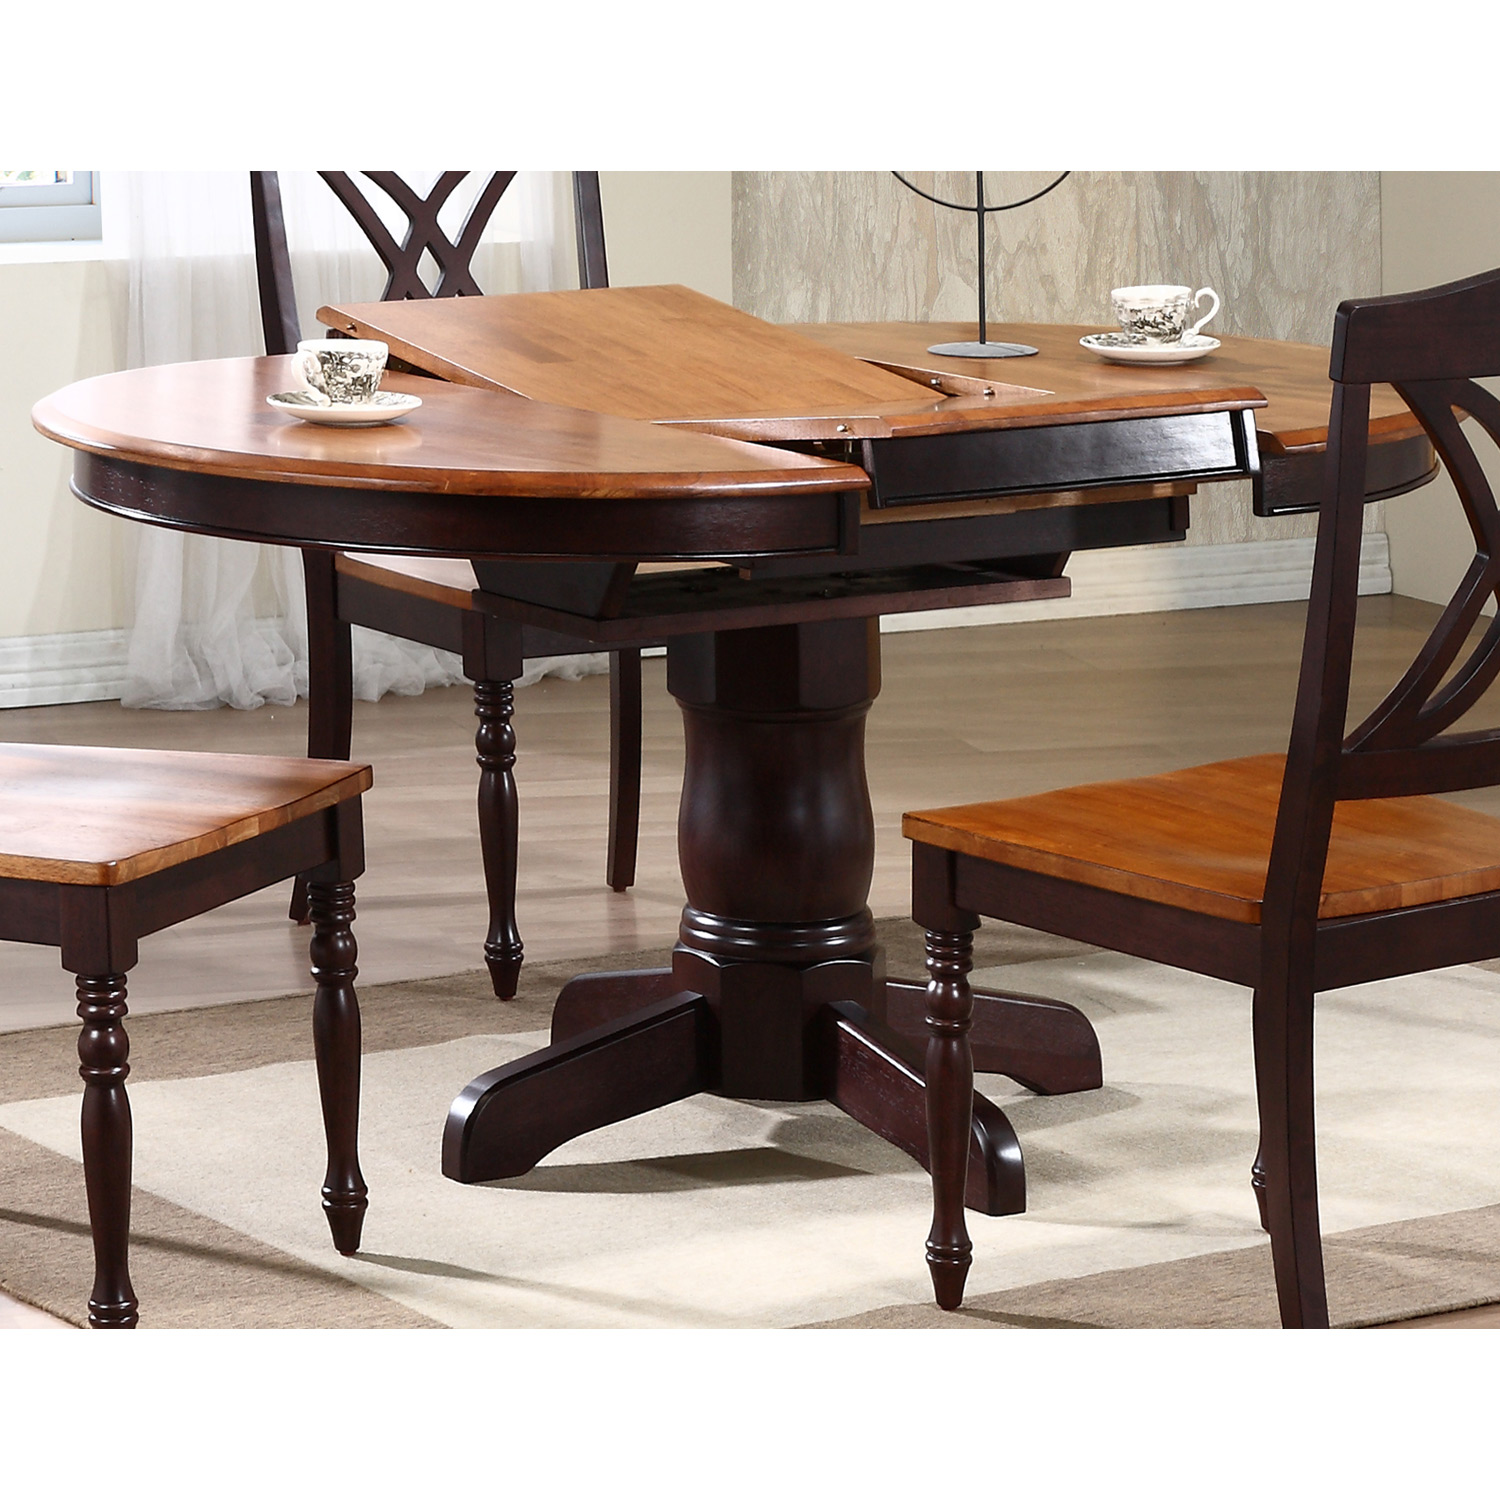 cyrus extending dining table round top pedestal base two tone dcg stores. Black Bedroom Furniture Sets. Home Design Ideas